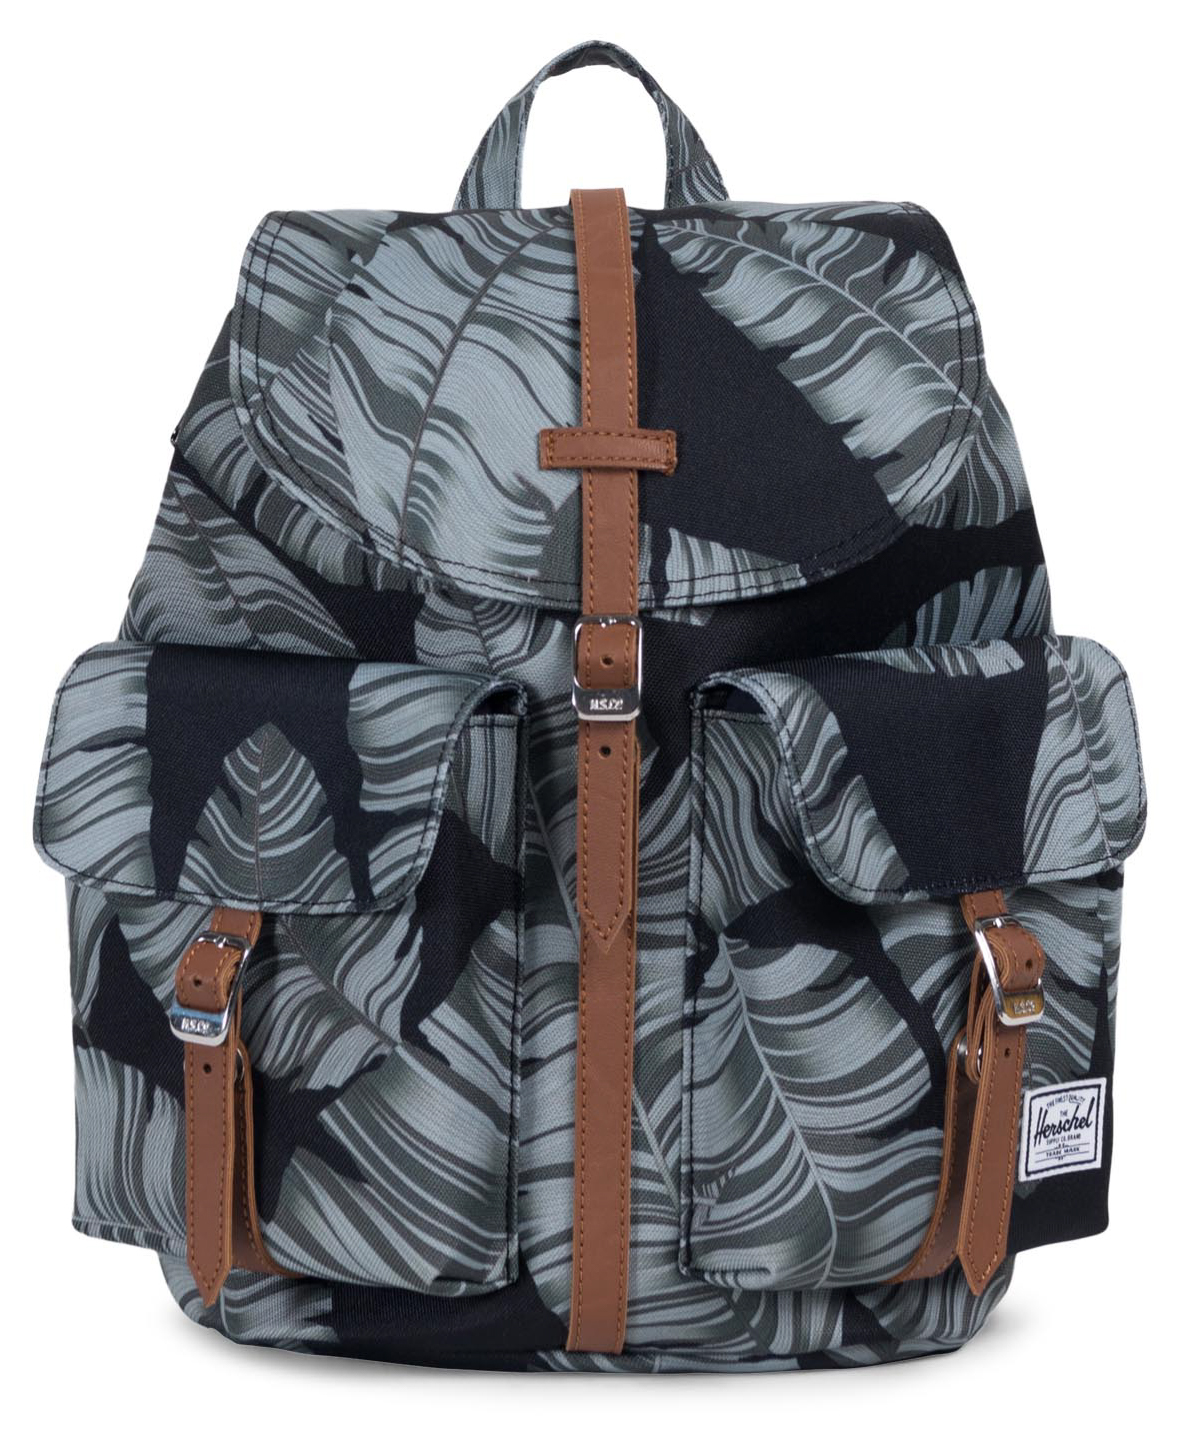 d122131457c ... Invoice and sofortüberweisung.deHerschel Dawson Backpack XS Black Palm    Tan   64